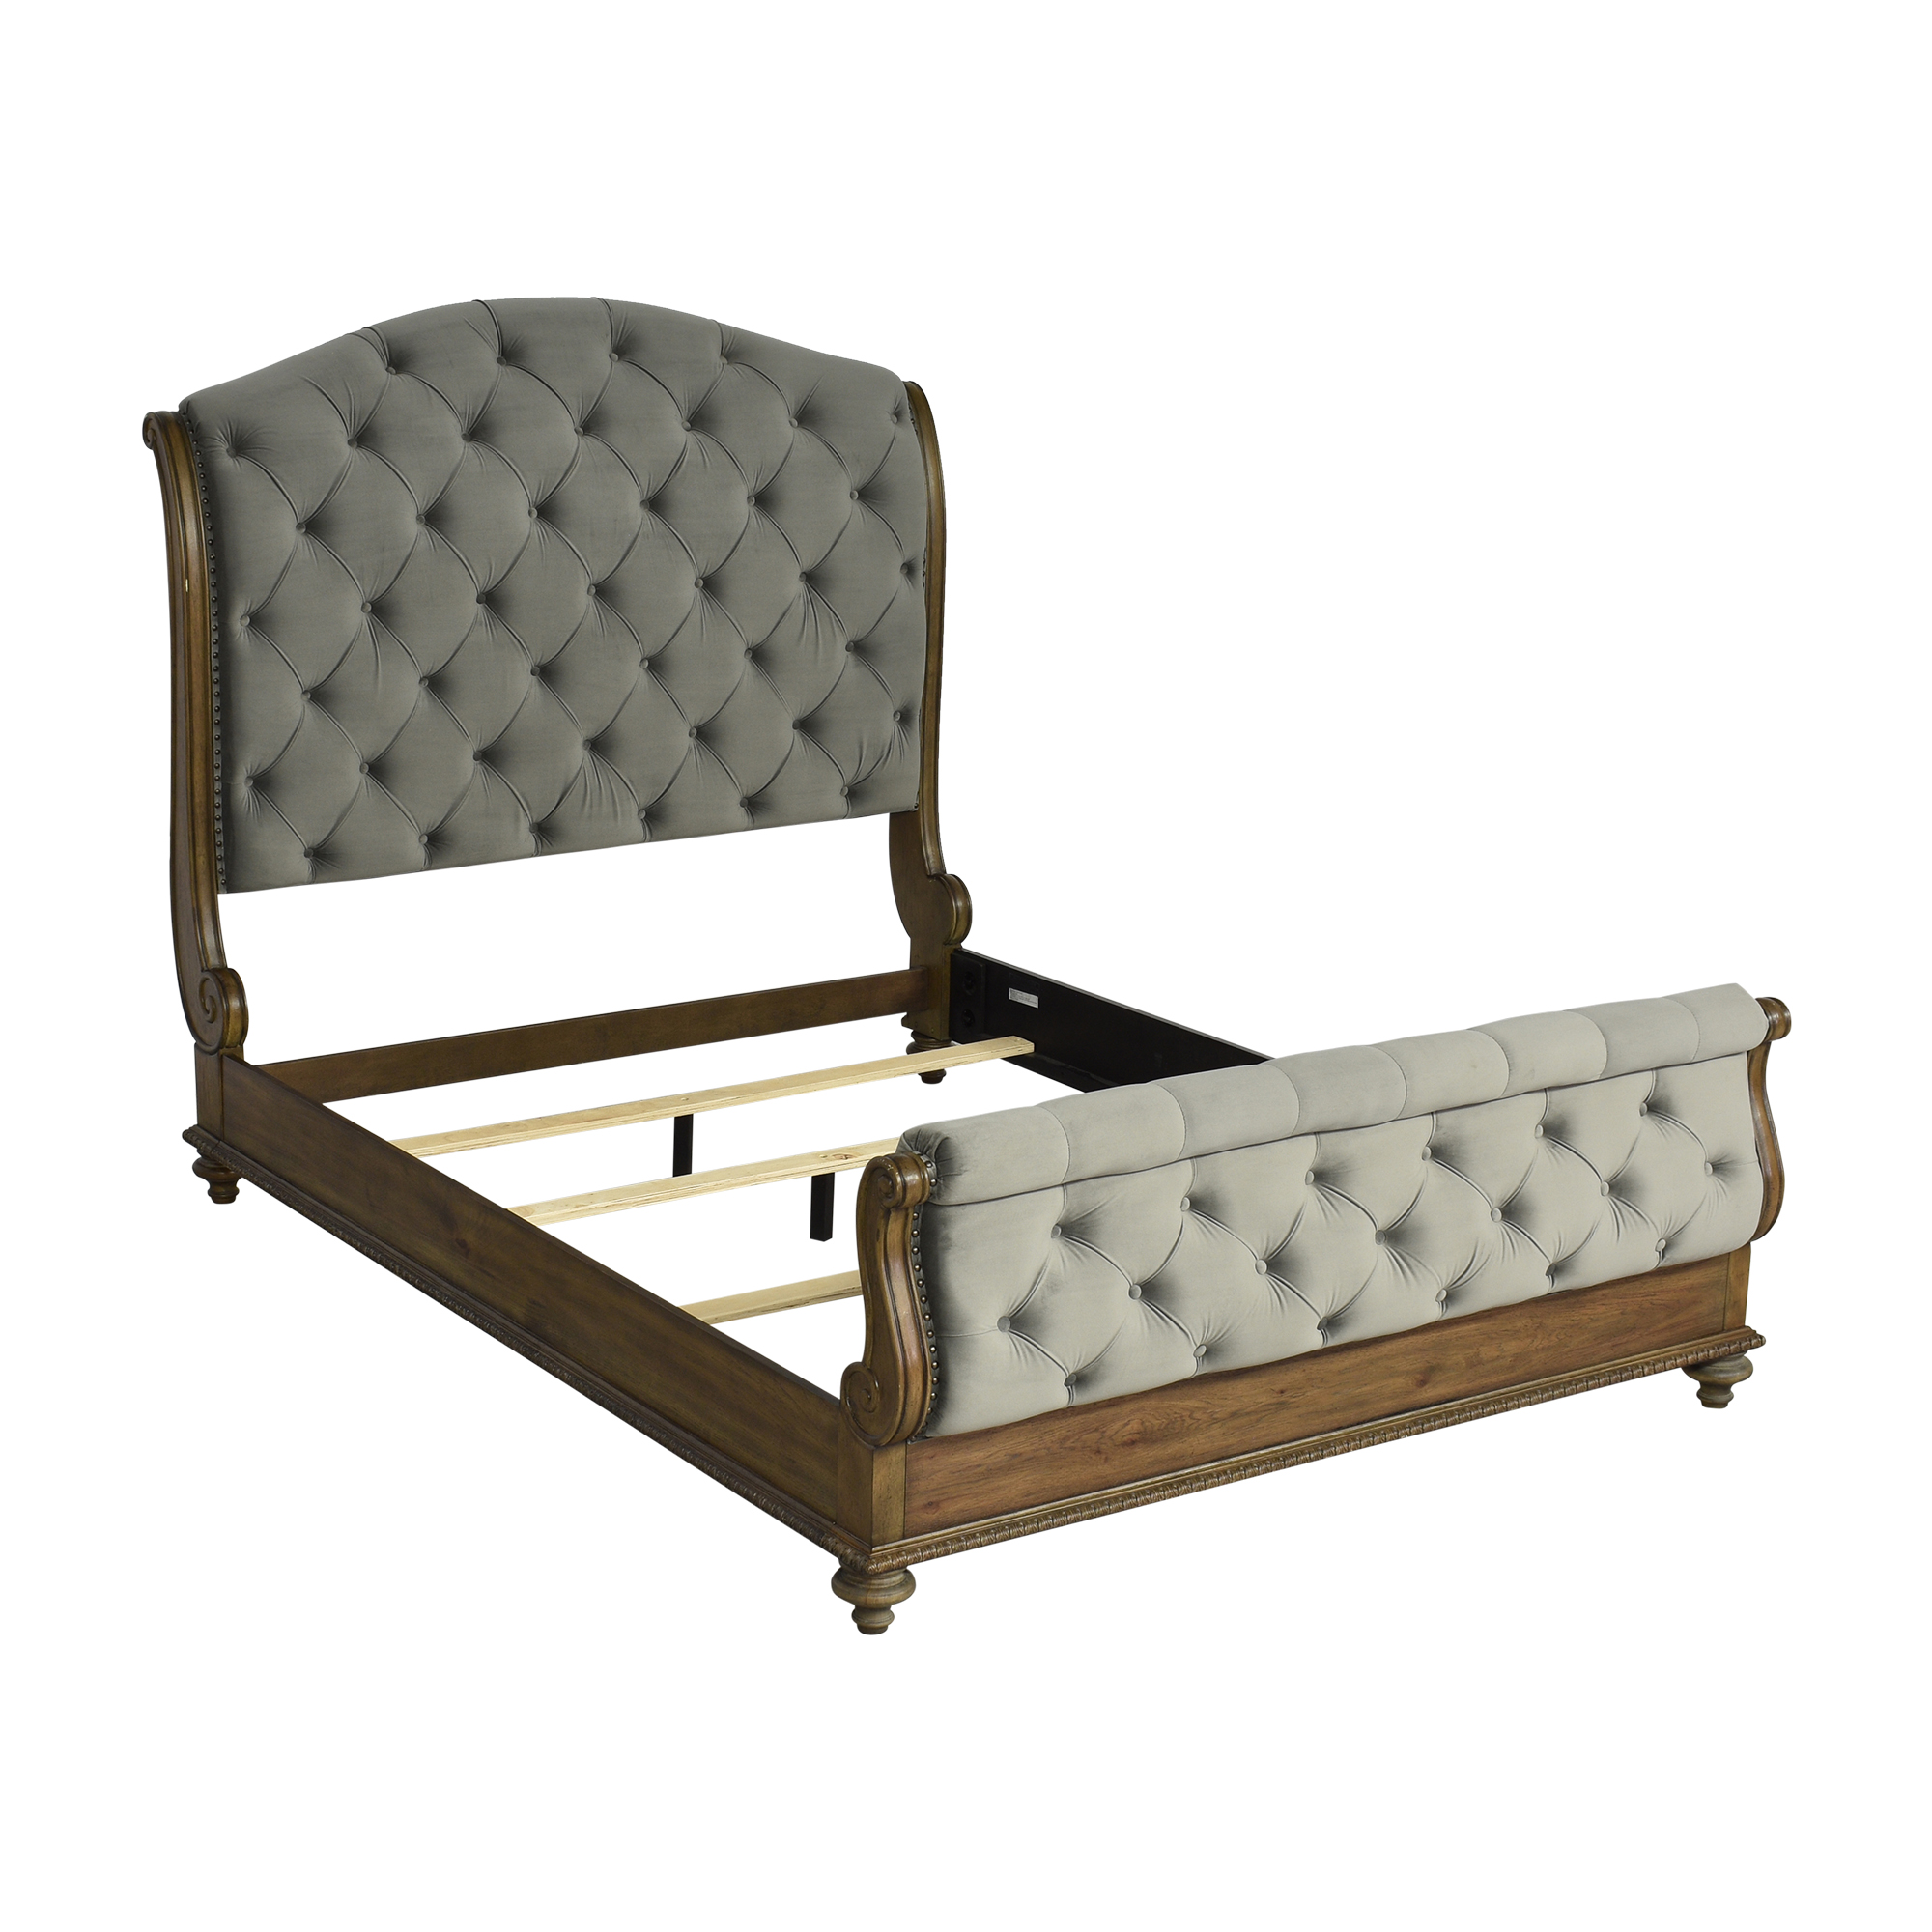 Raymour & Flanigan Raymour & Flanigan Castlehaven Queen Bed for sale